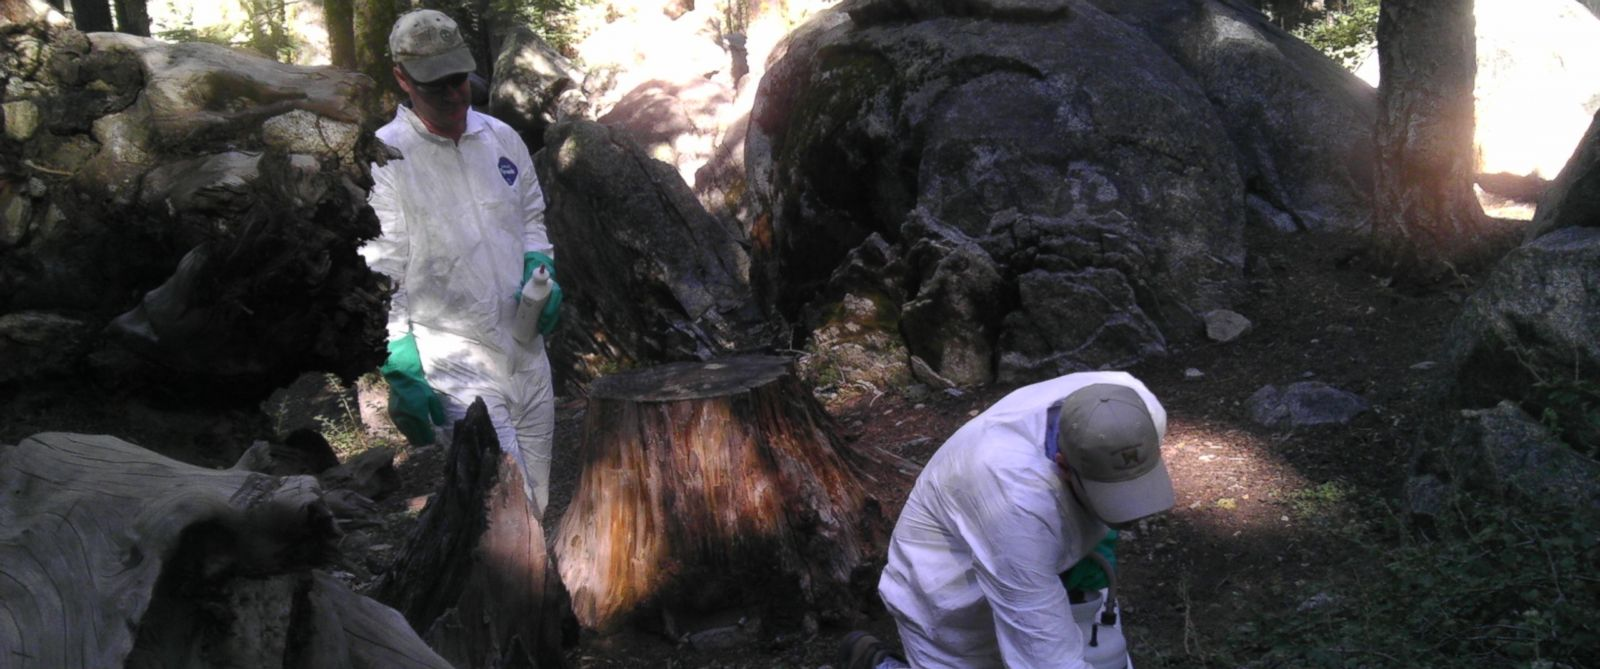 PHOTO: CDPH investigators performing flea treatment at the Crane Flat campground, Yosemite National Park. Investigators treated for fleas in the campground burrows during the week.